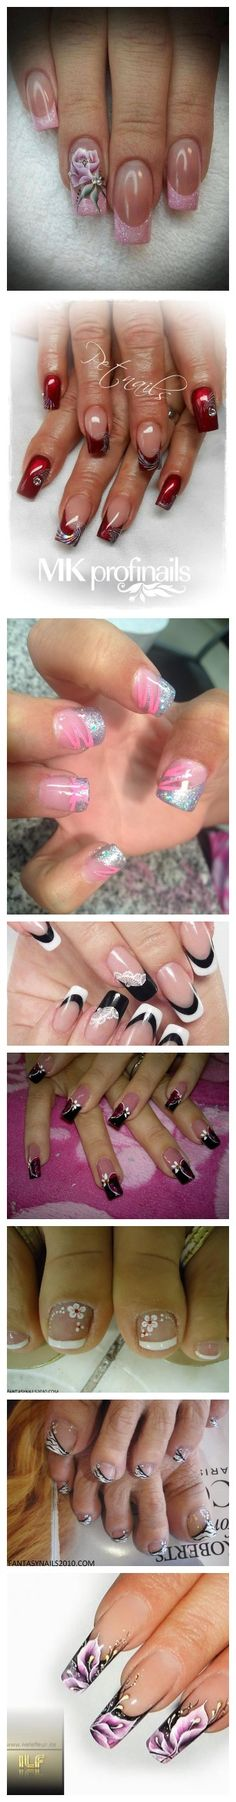 Nail Art Ideas and Designs I LOVE this nail shape! Frensh Nails, Hot Nails, Hair And Nails, Manicures, Fabulous Nails, Gorgeous Nails, Pretty Nails, Cute Nail Designs, Nail Polish Designs